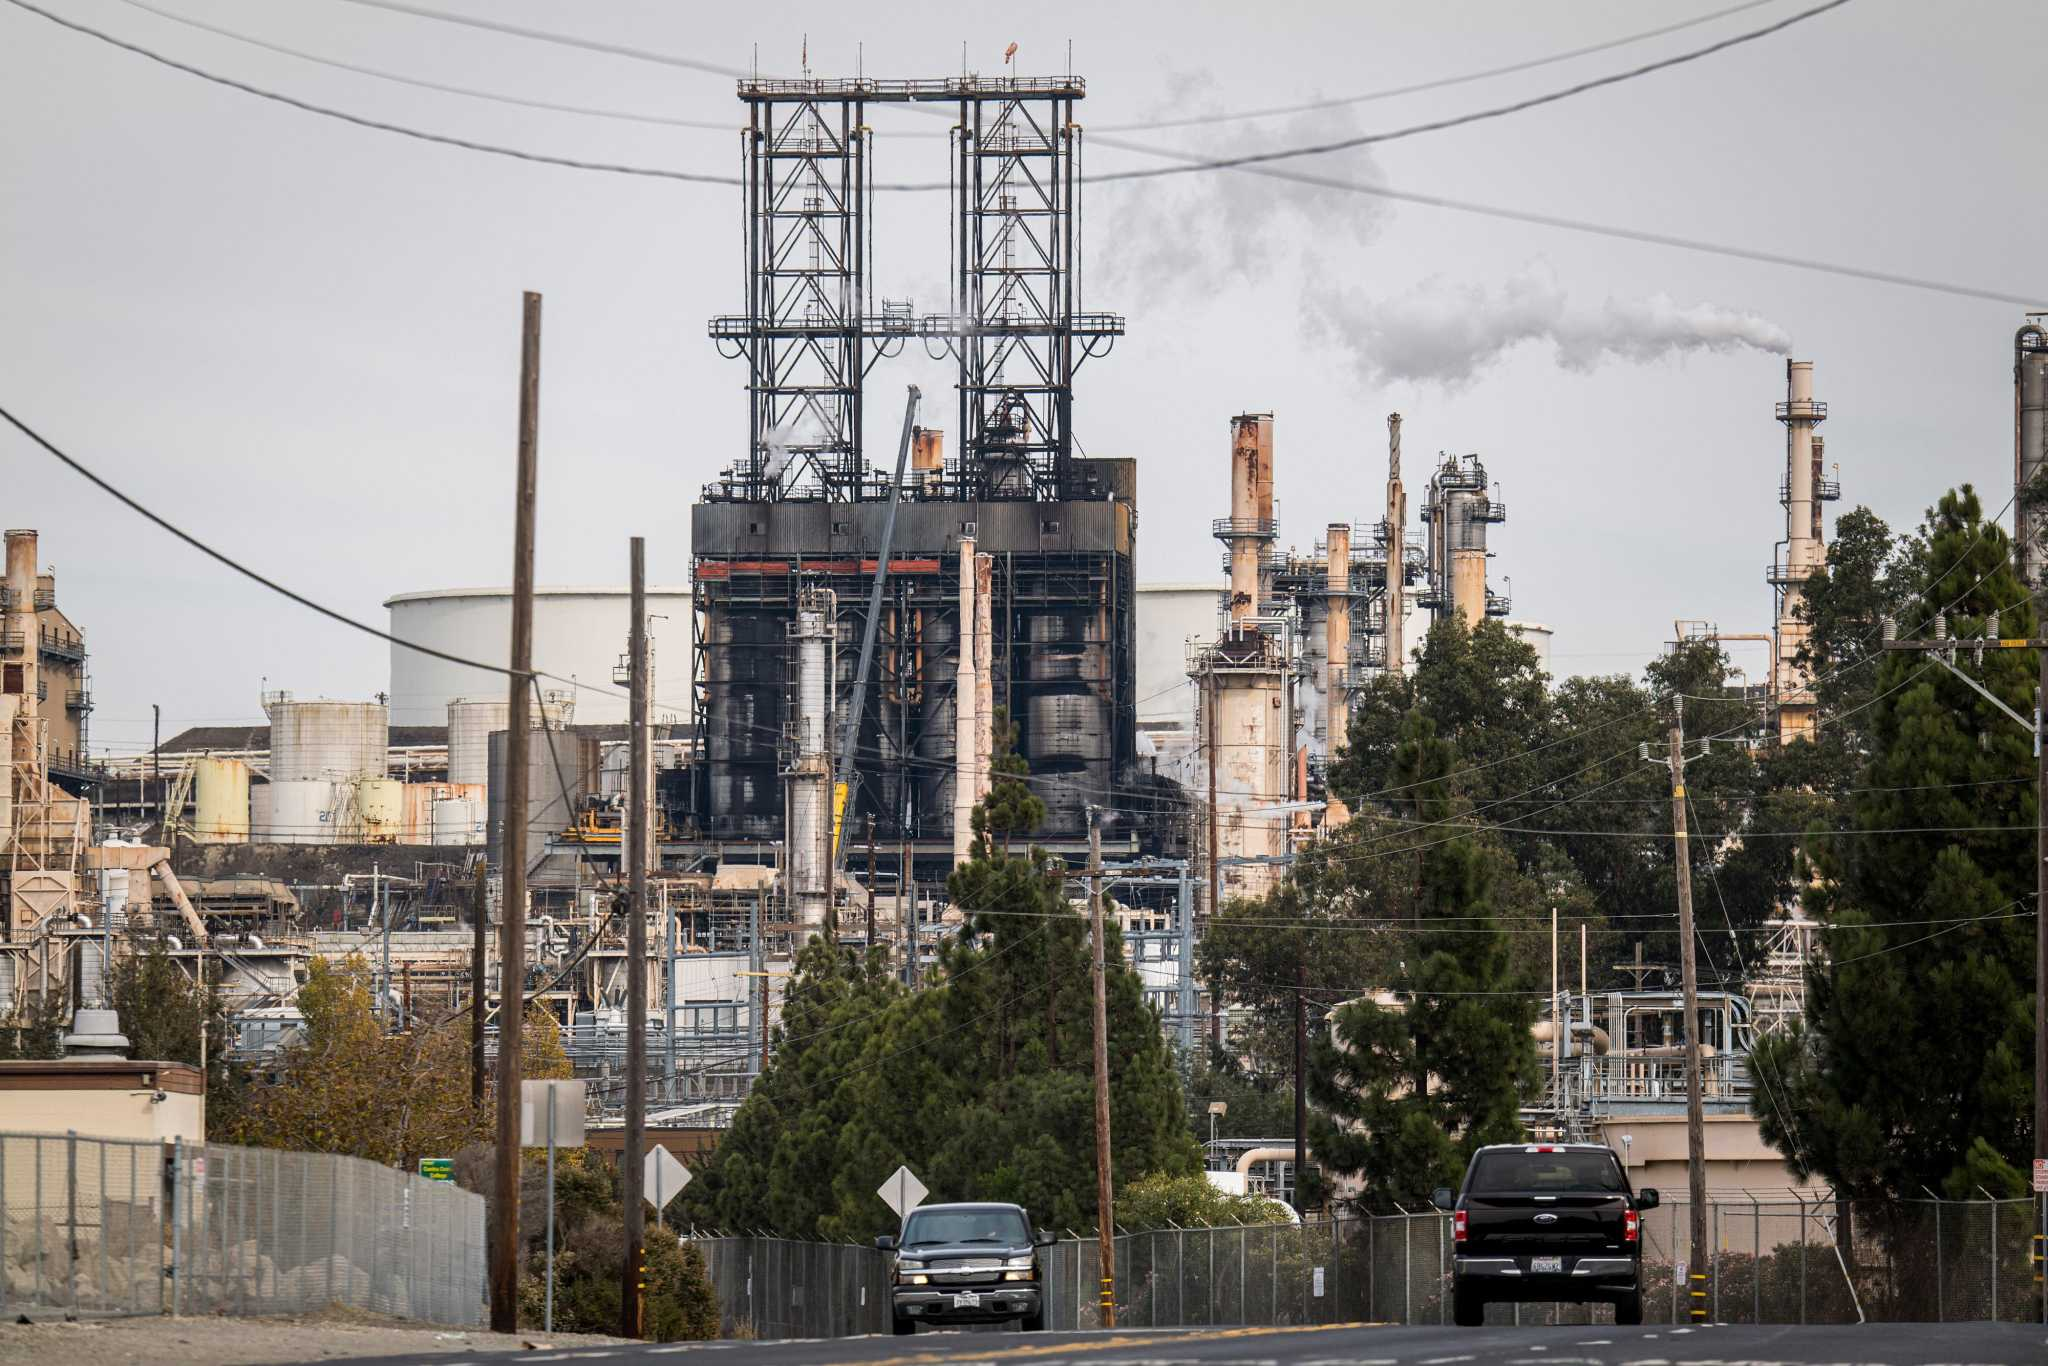 With COVID dragging down gasoline demand, refineries look to biofuels to prop them up